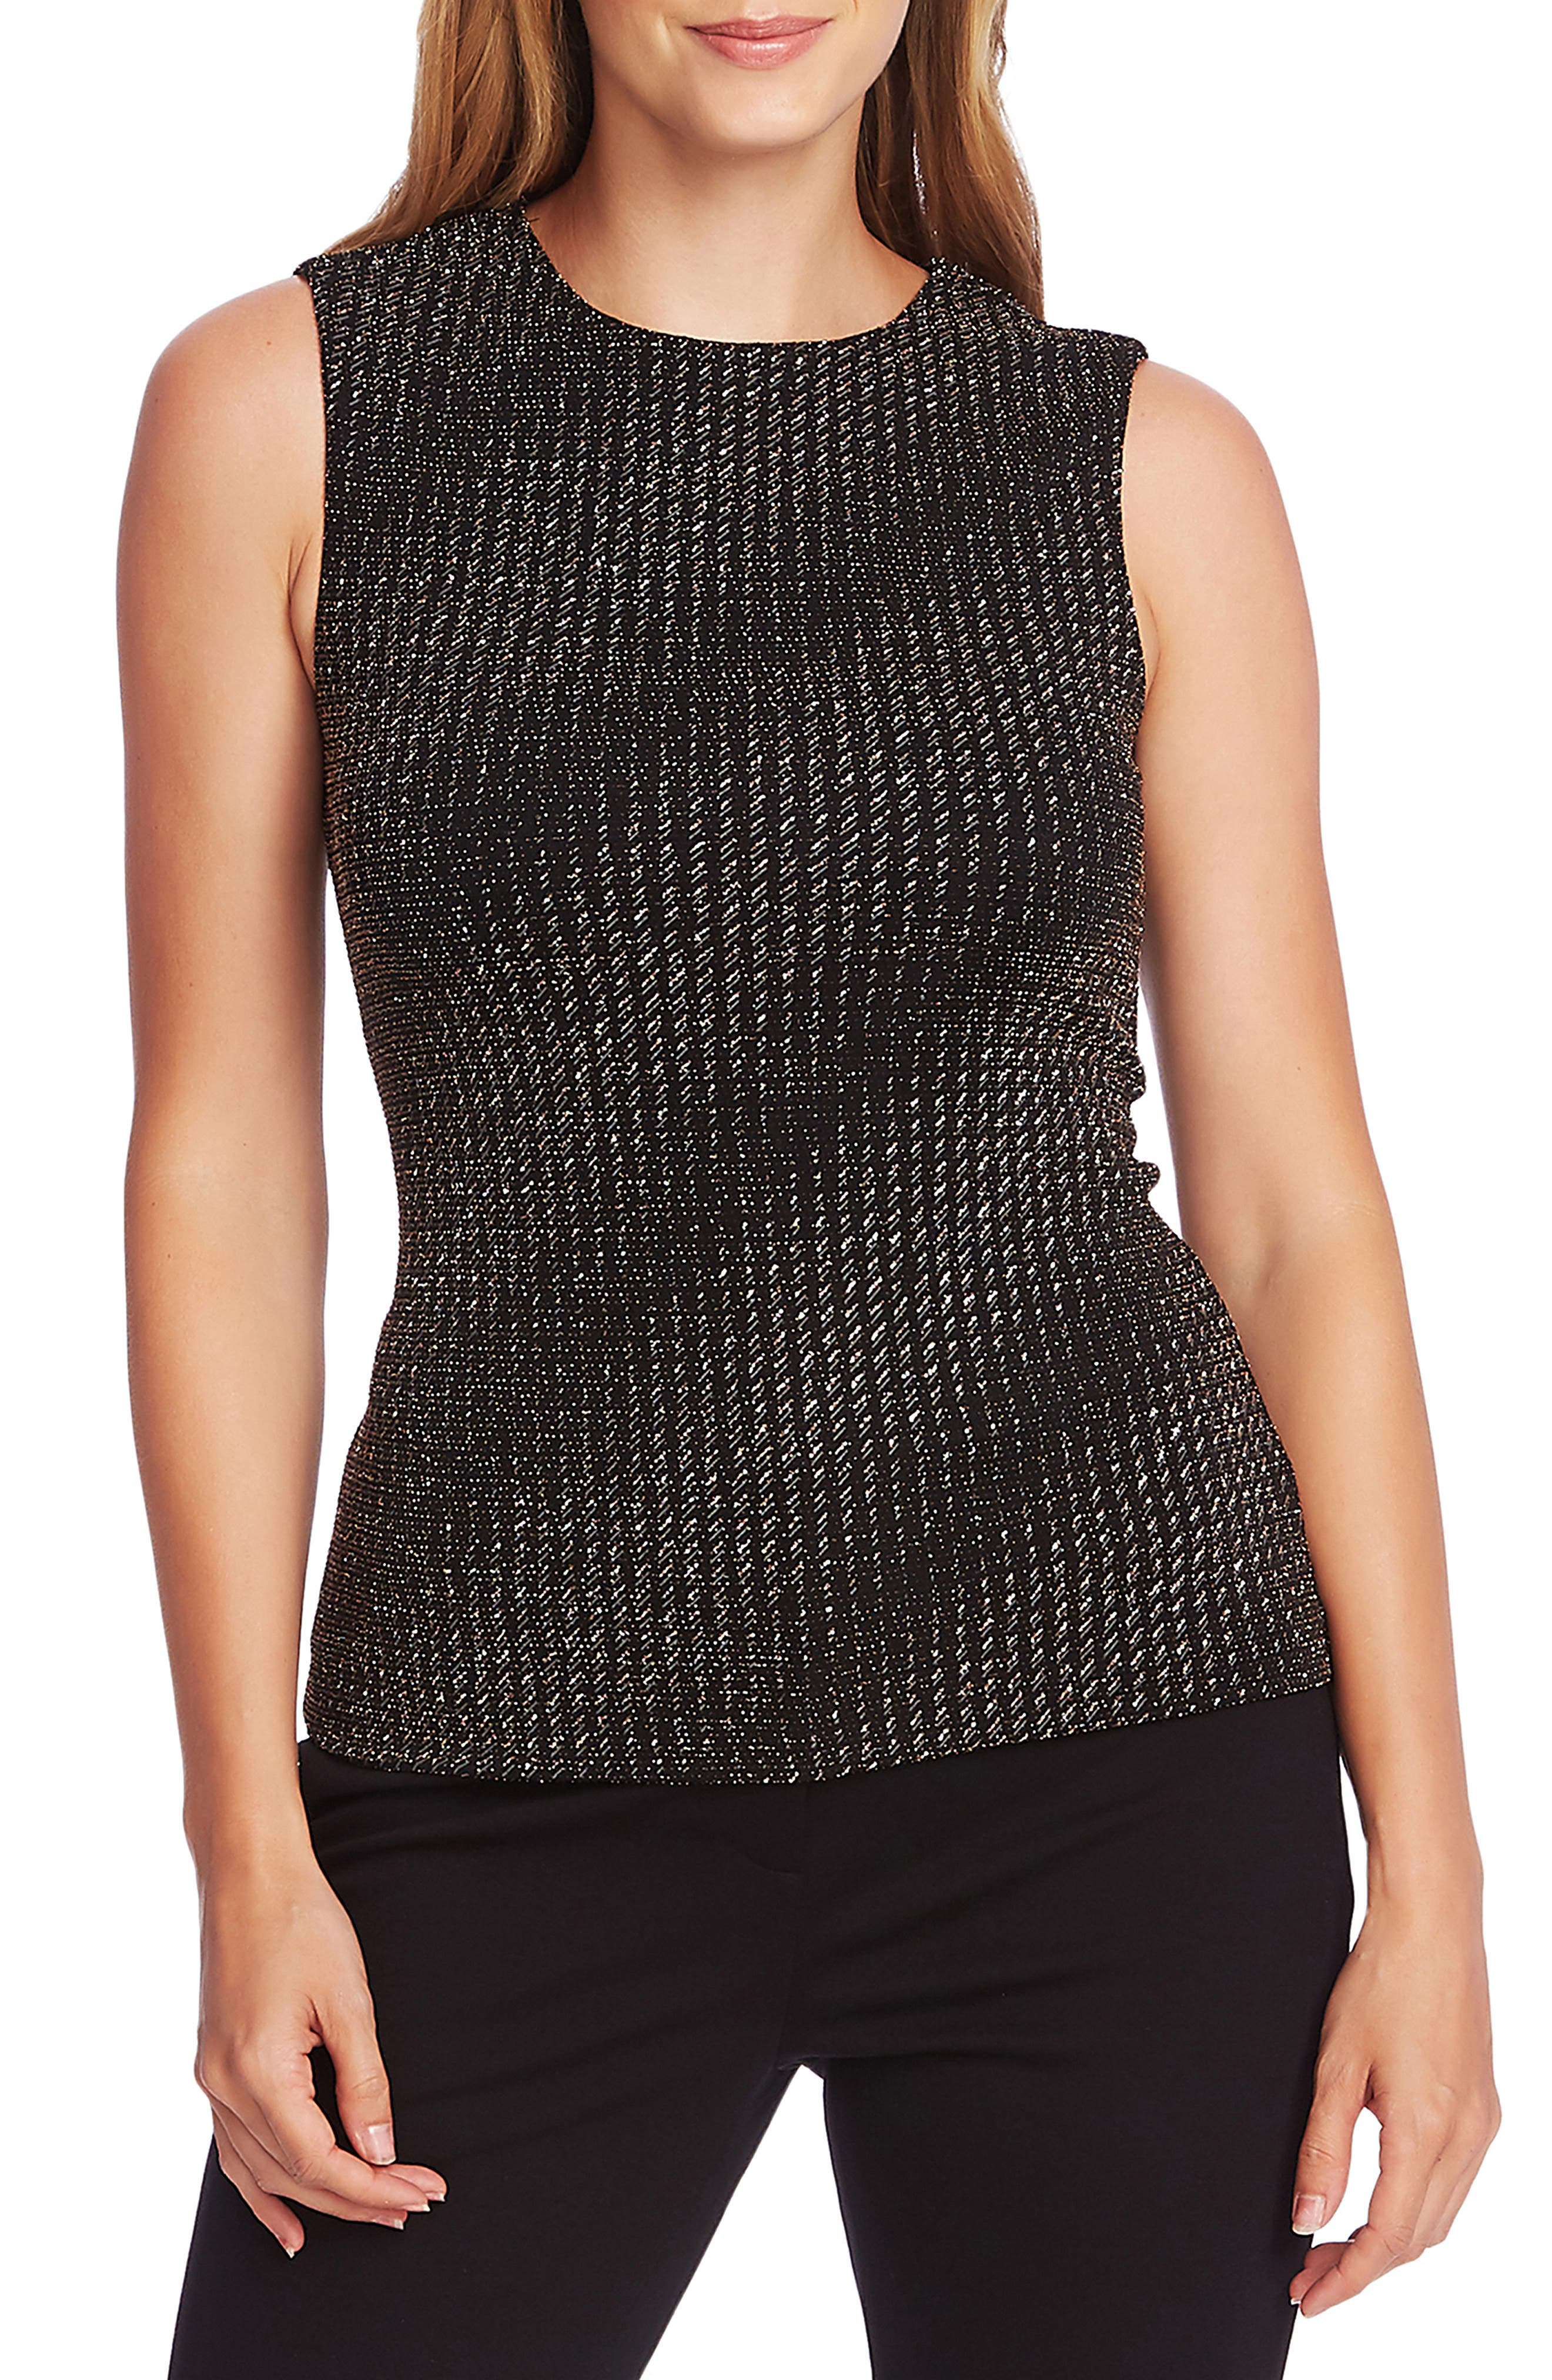 Vince Camuto Knits Metallic Texture Knit Sleeveless Top